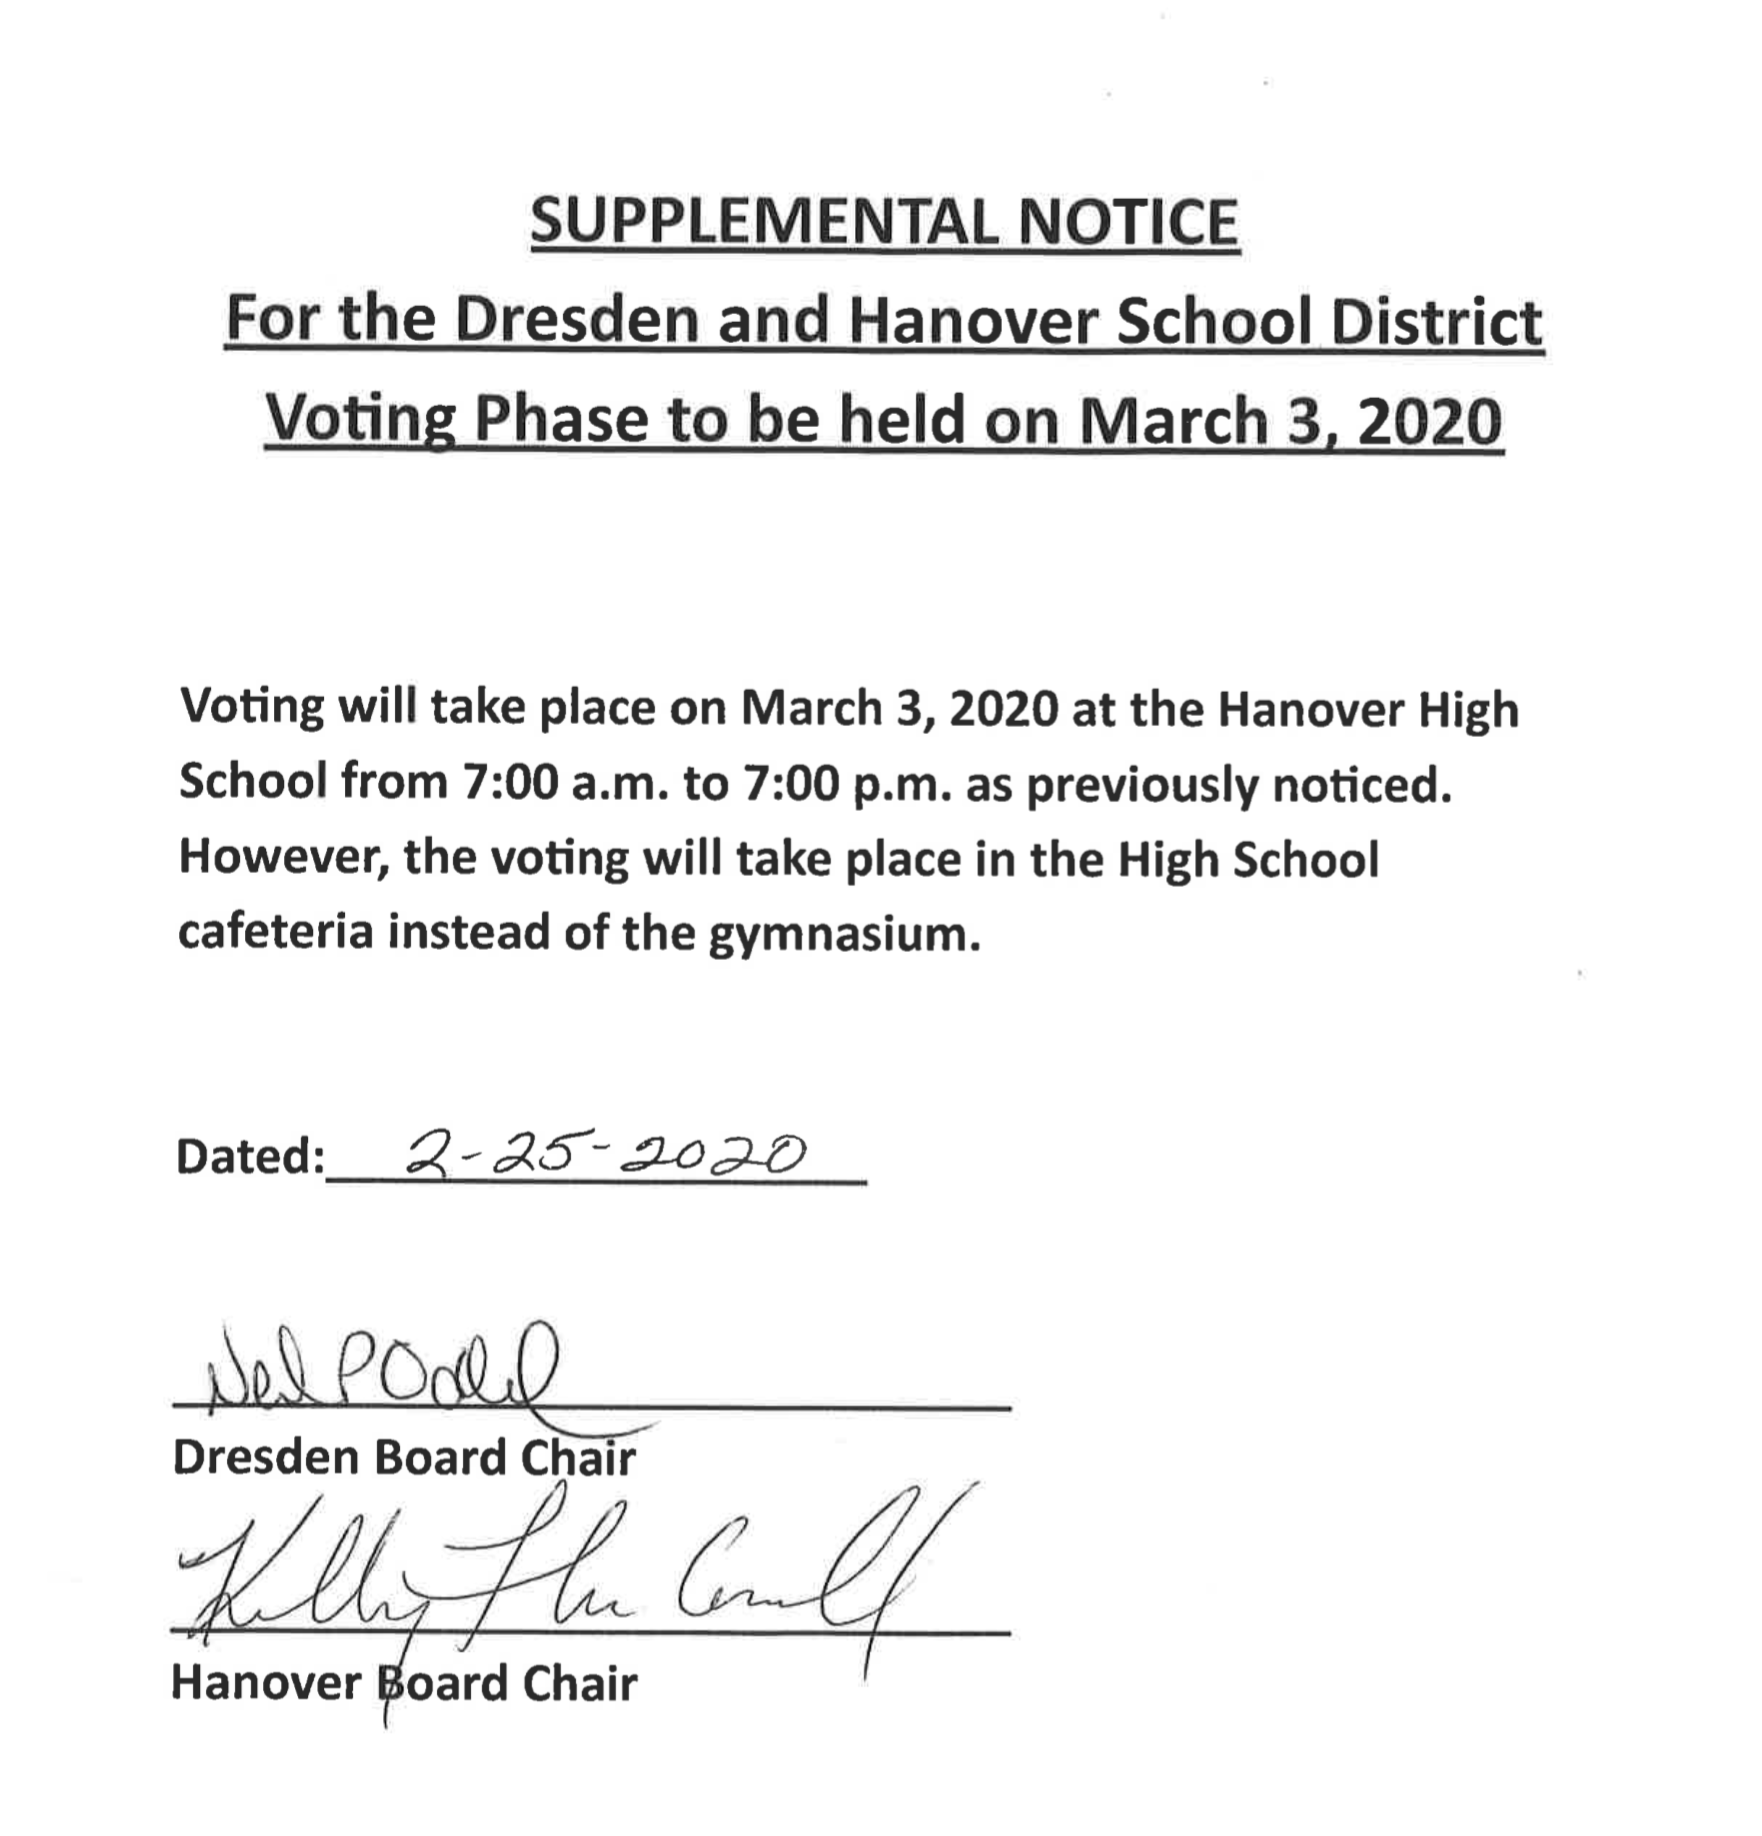 Supplemental Notice - vote to be at the High School Cafeteria rather than the gym on 03/03/20